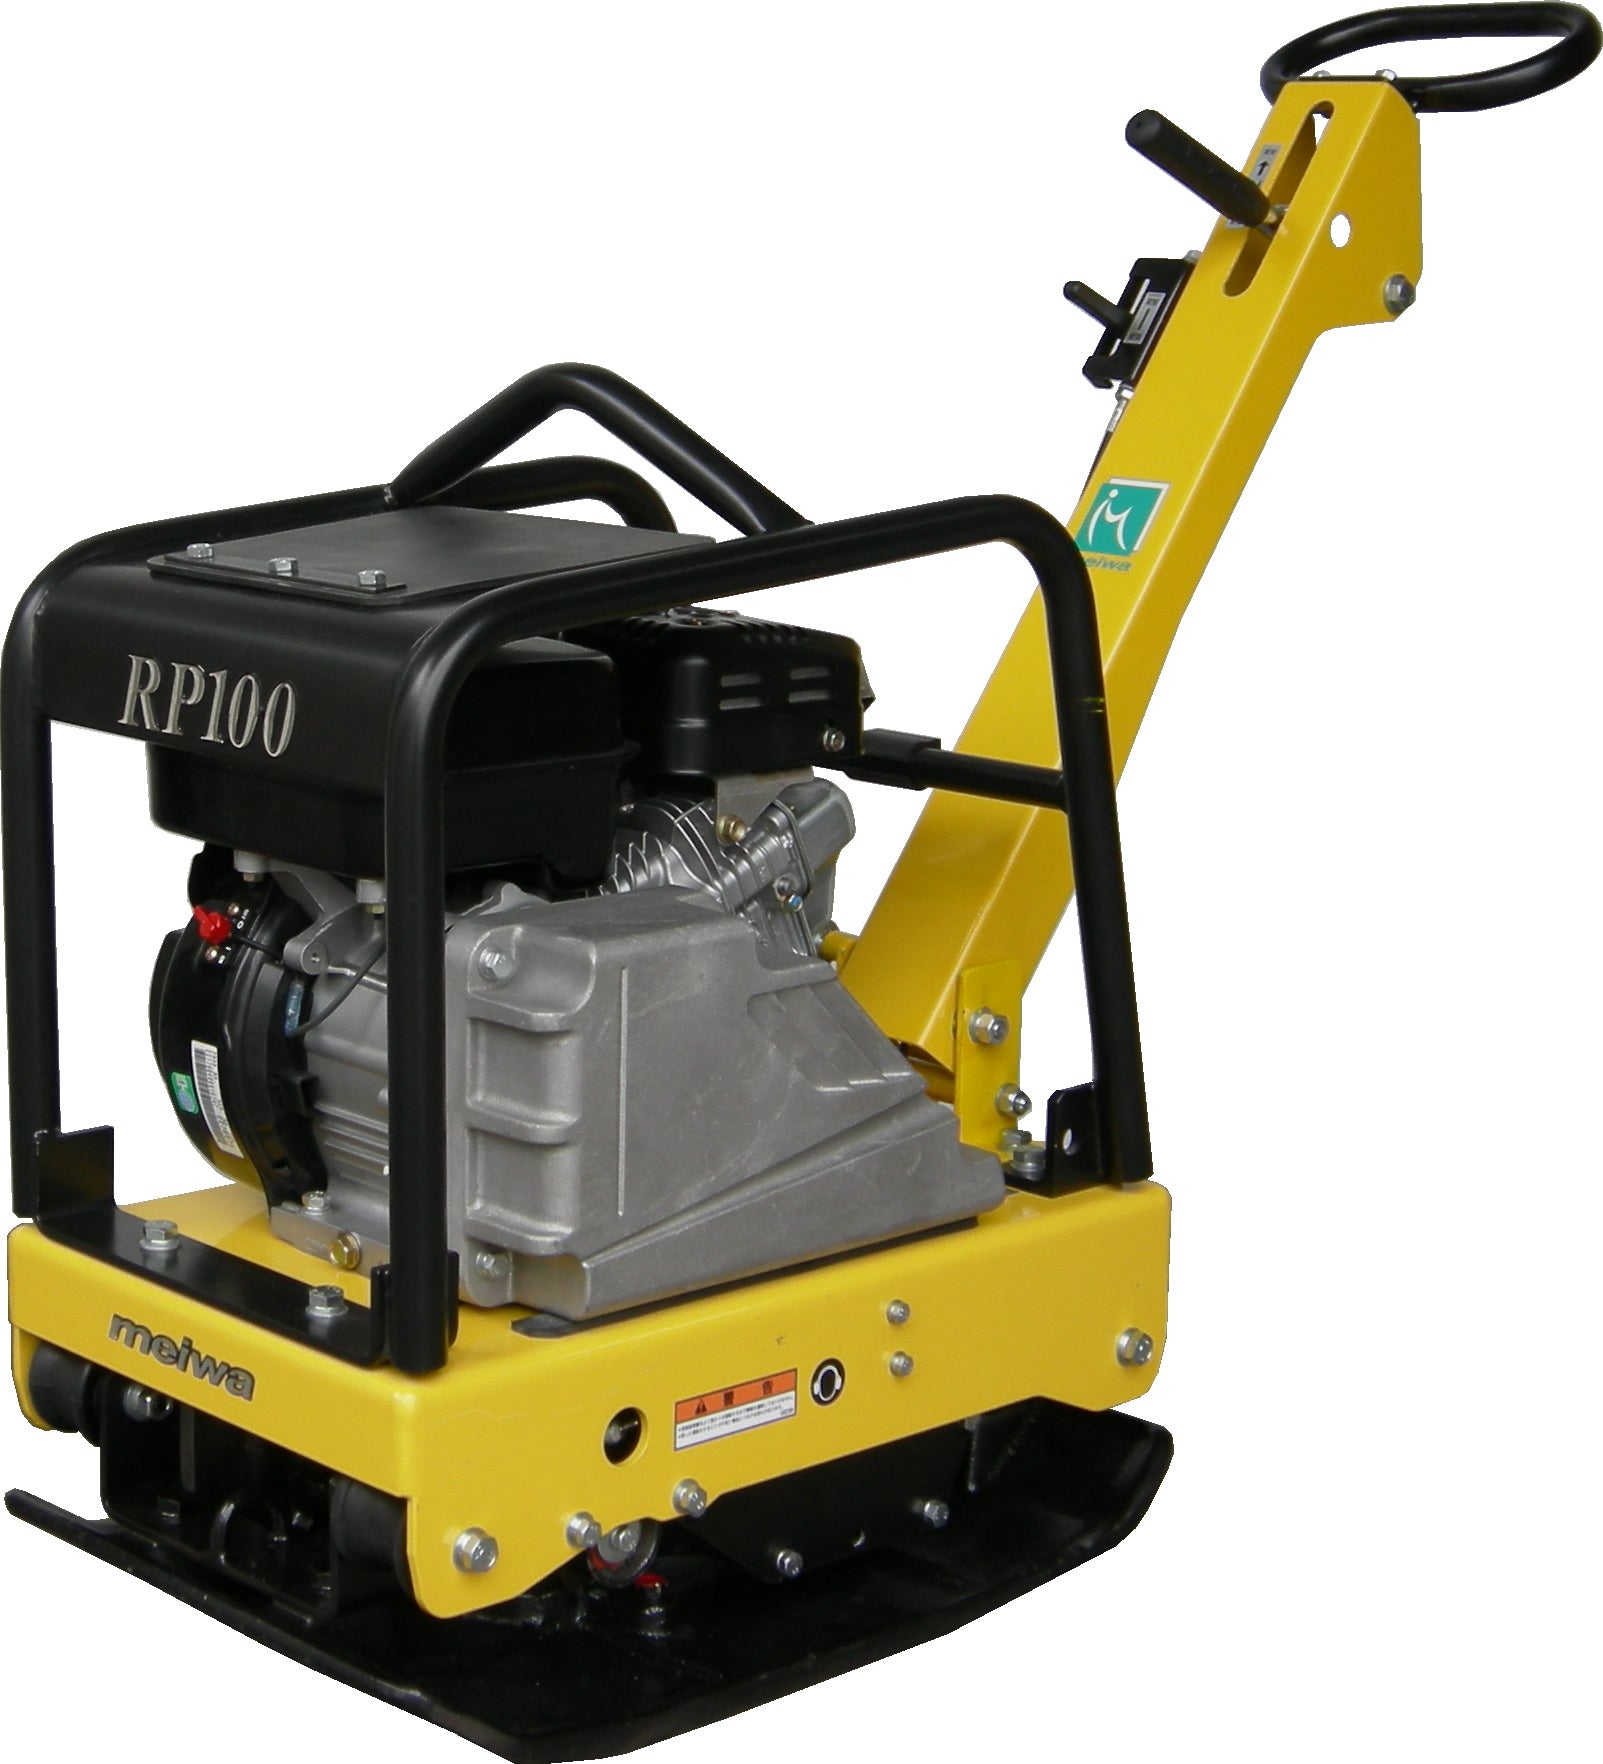 RP100 Reversible Plate Compactor